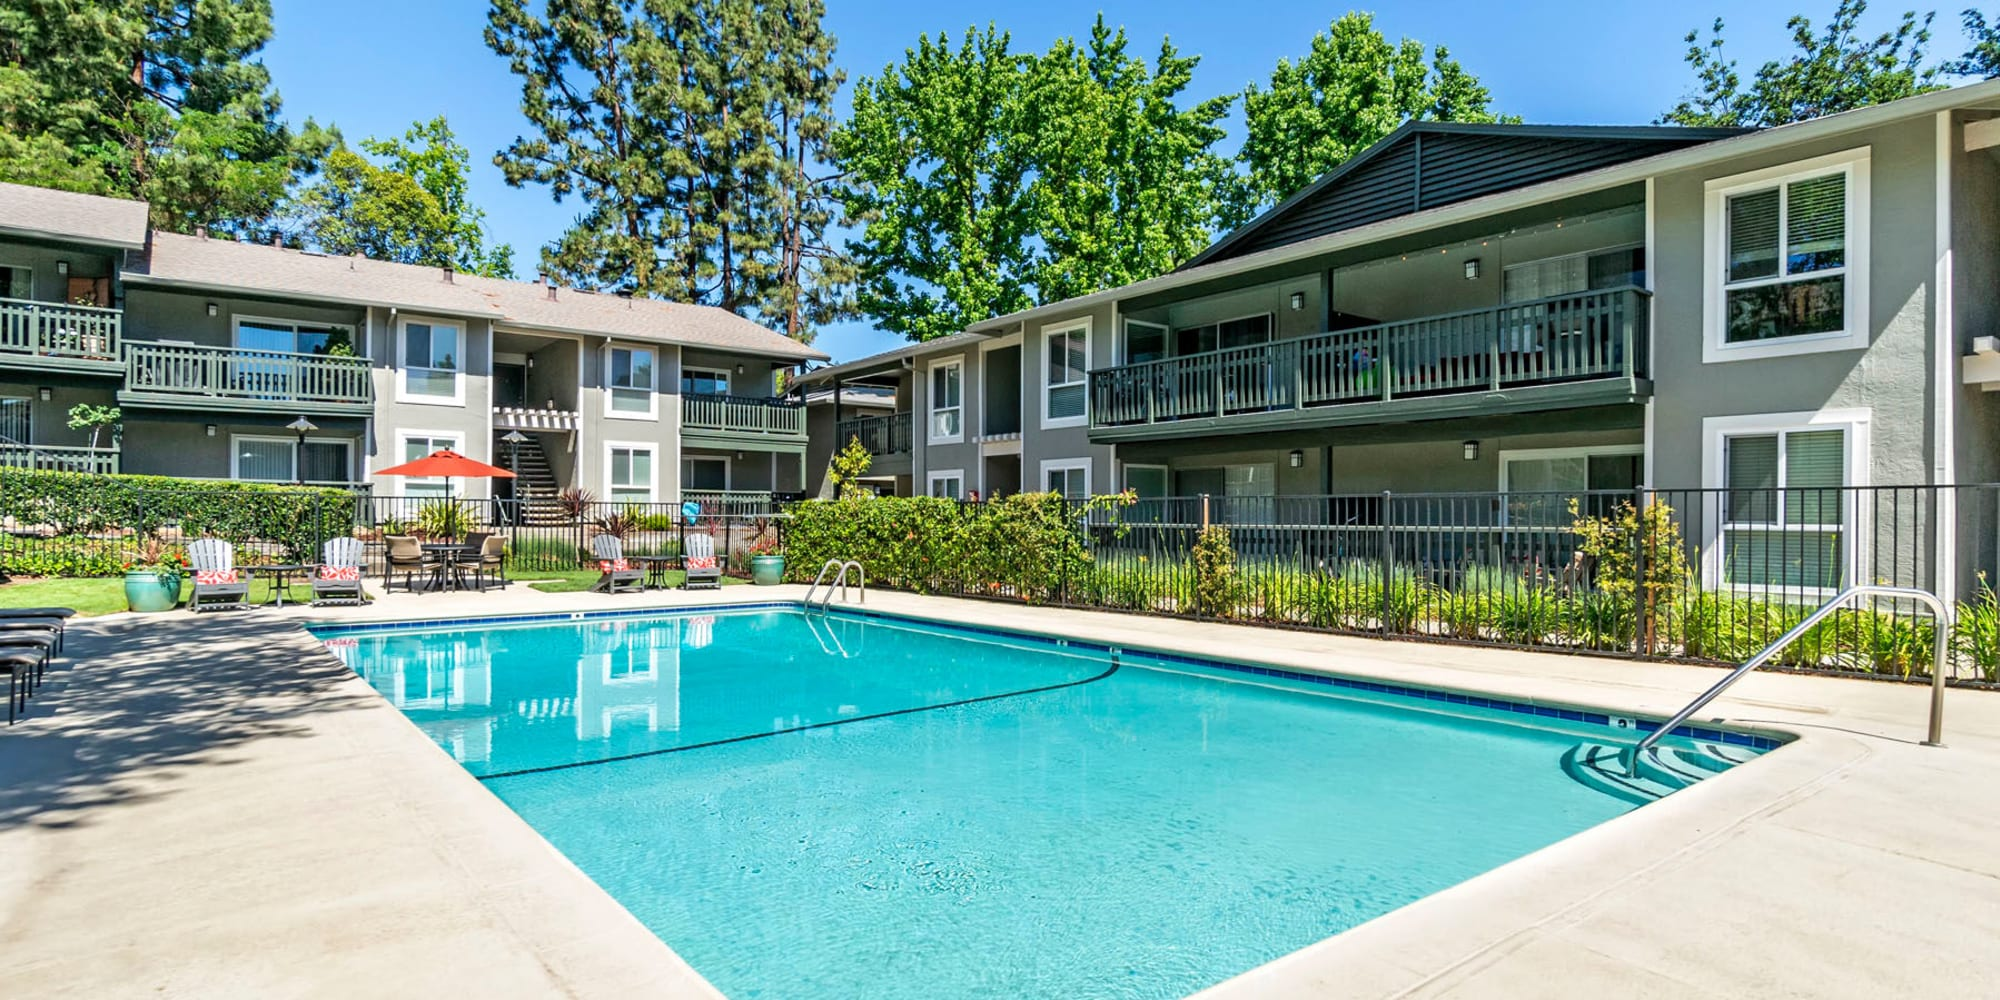 Another sunny day at the swimming pool at Pleasanton Glen Apartment Homes in Pleasanton, California